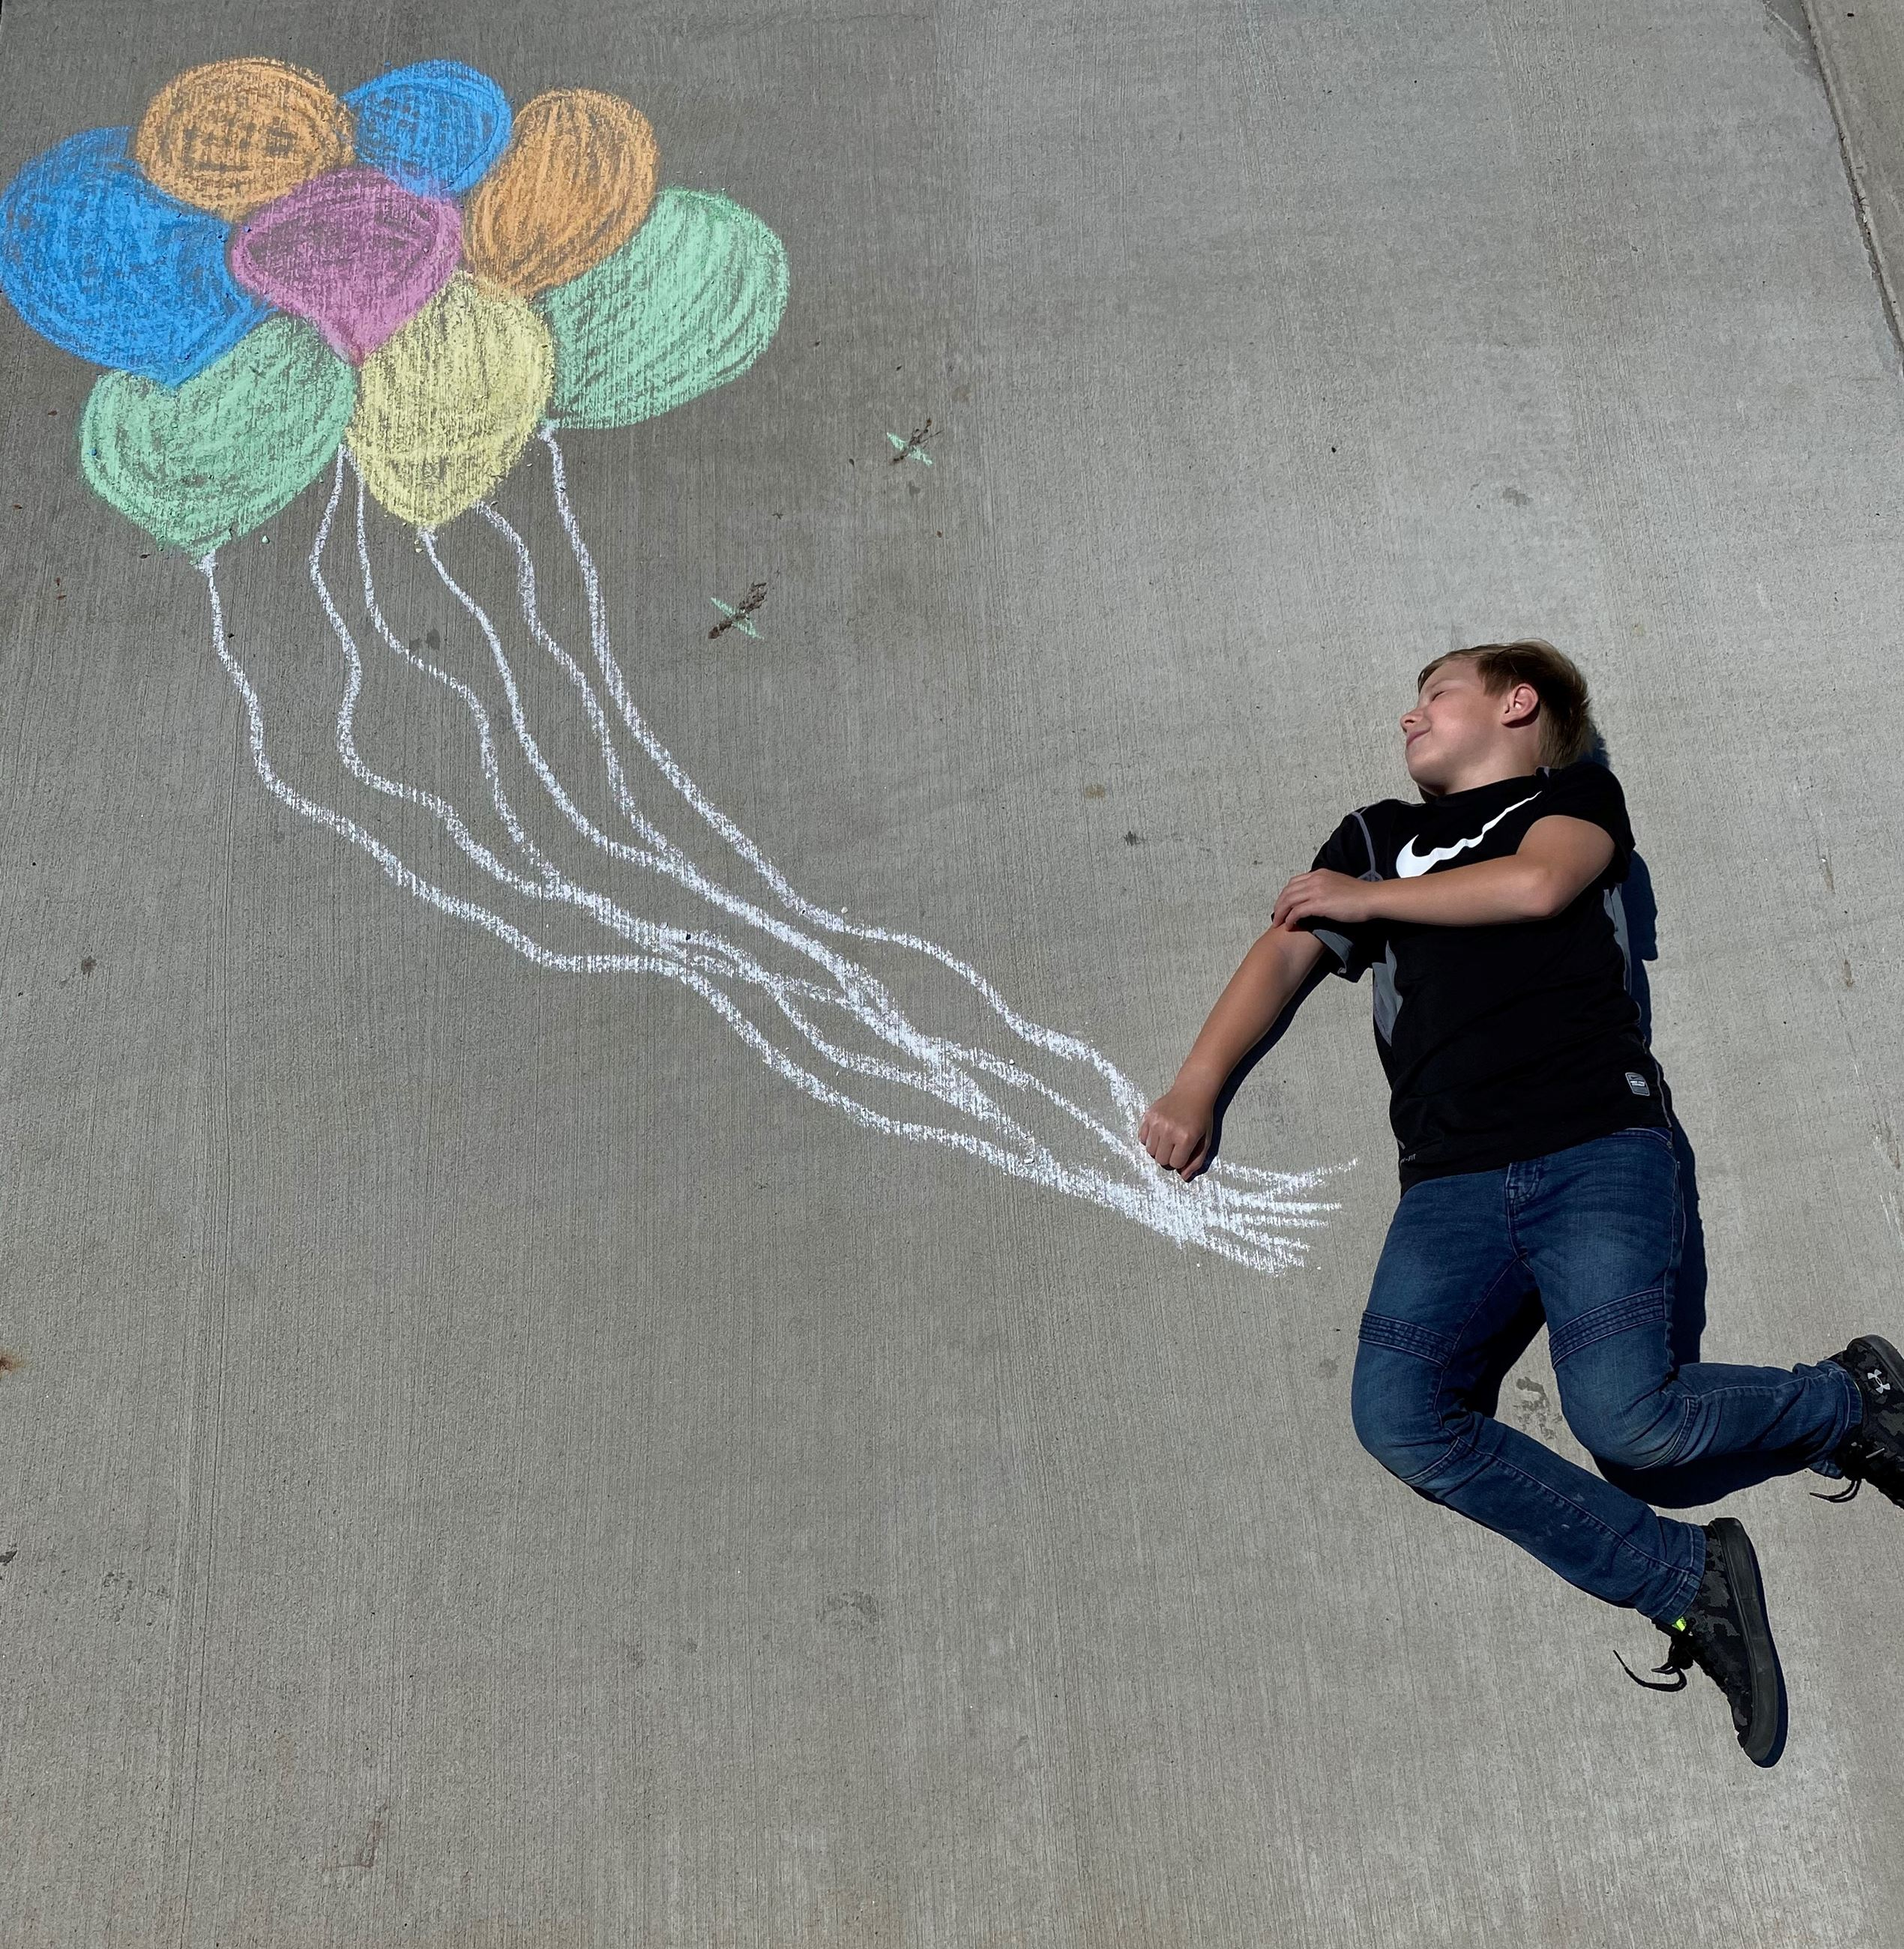 chalk balloon